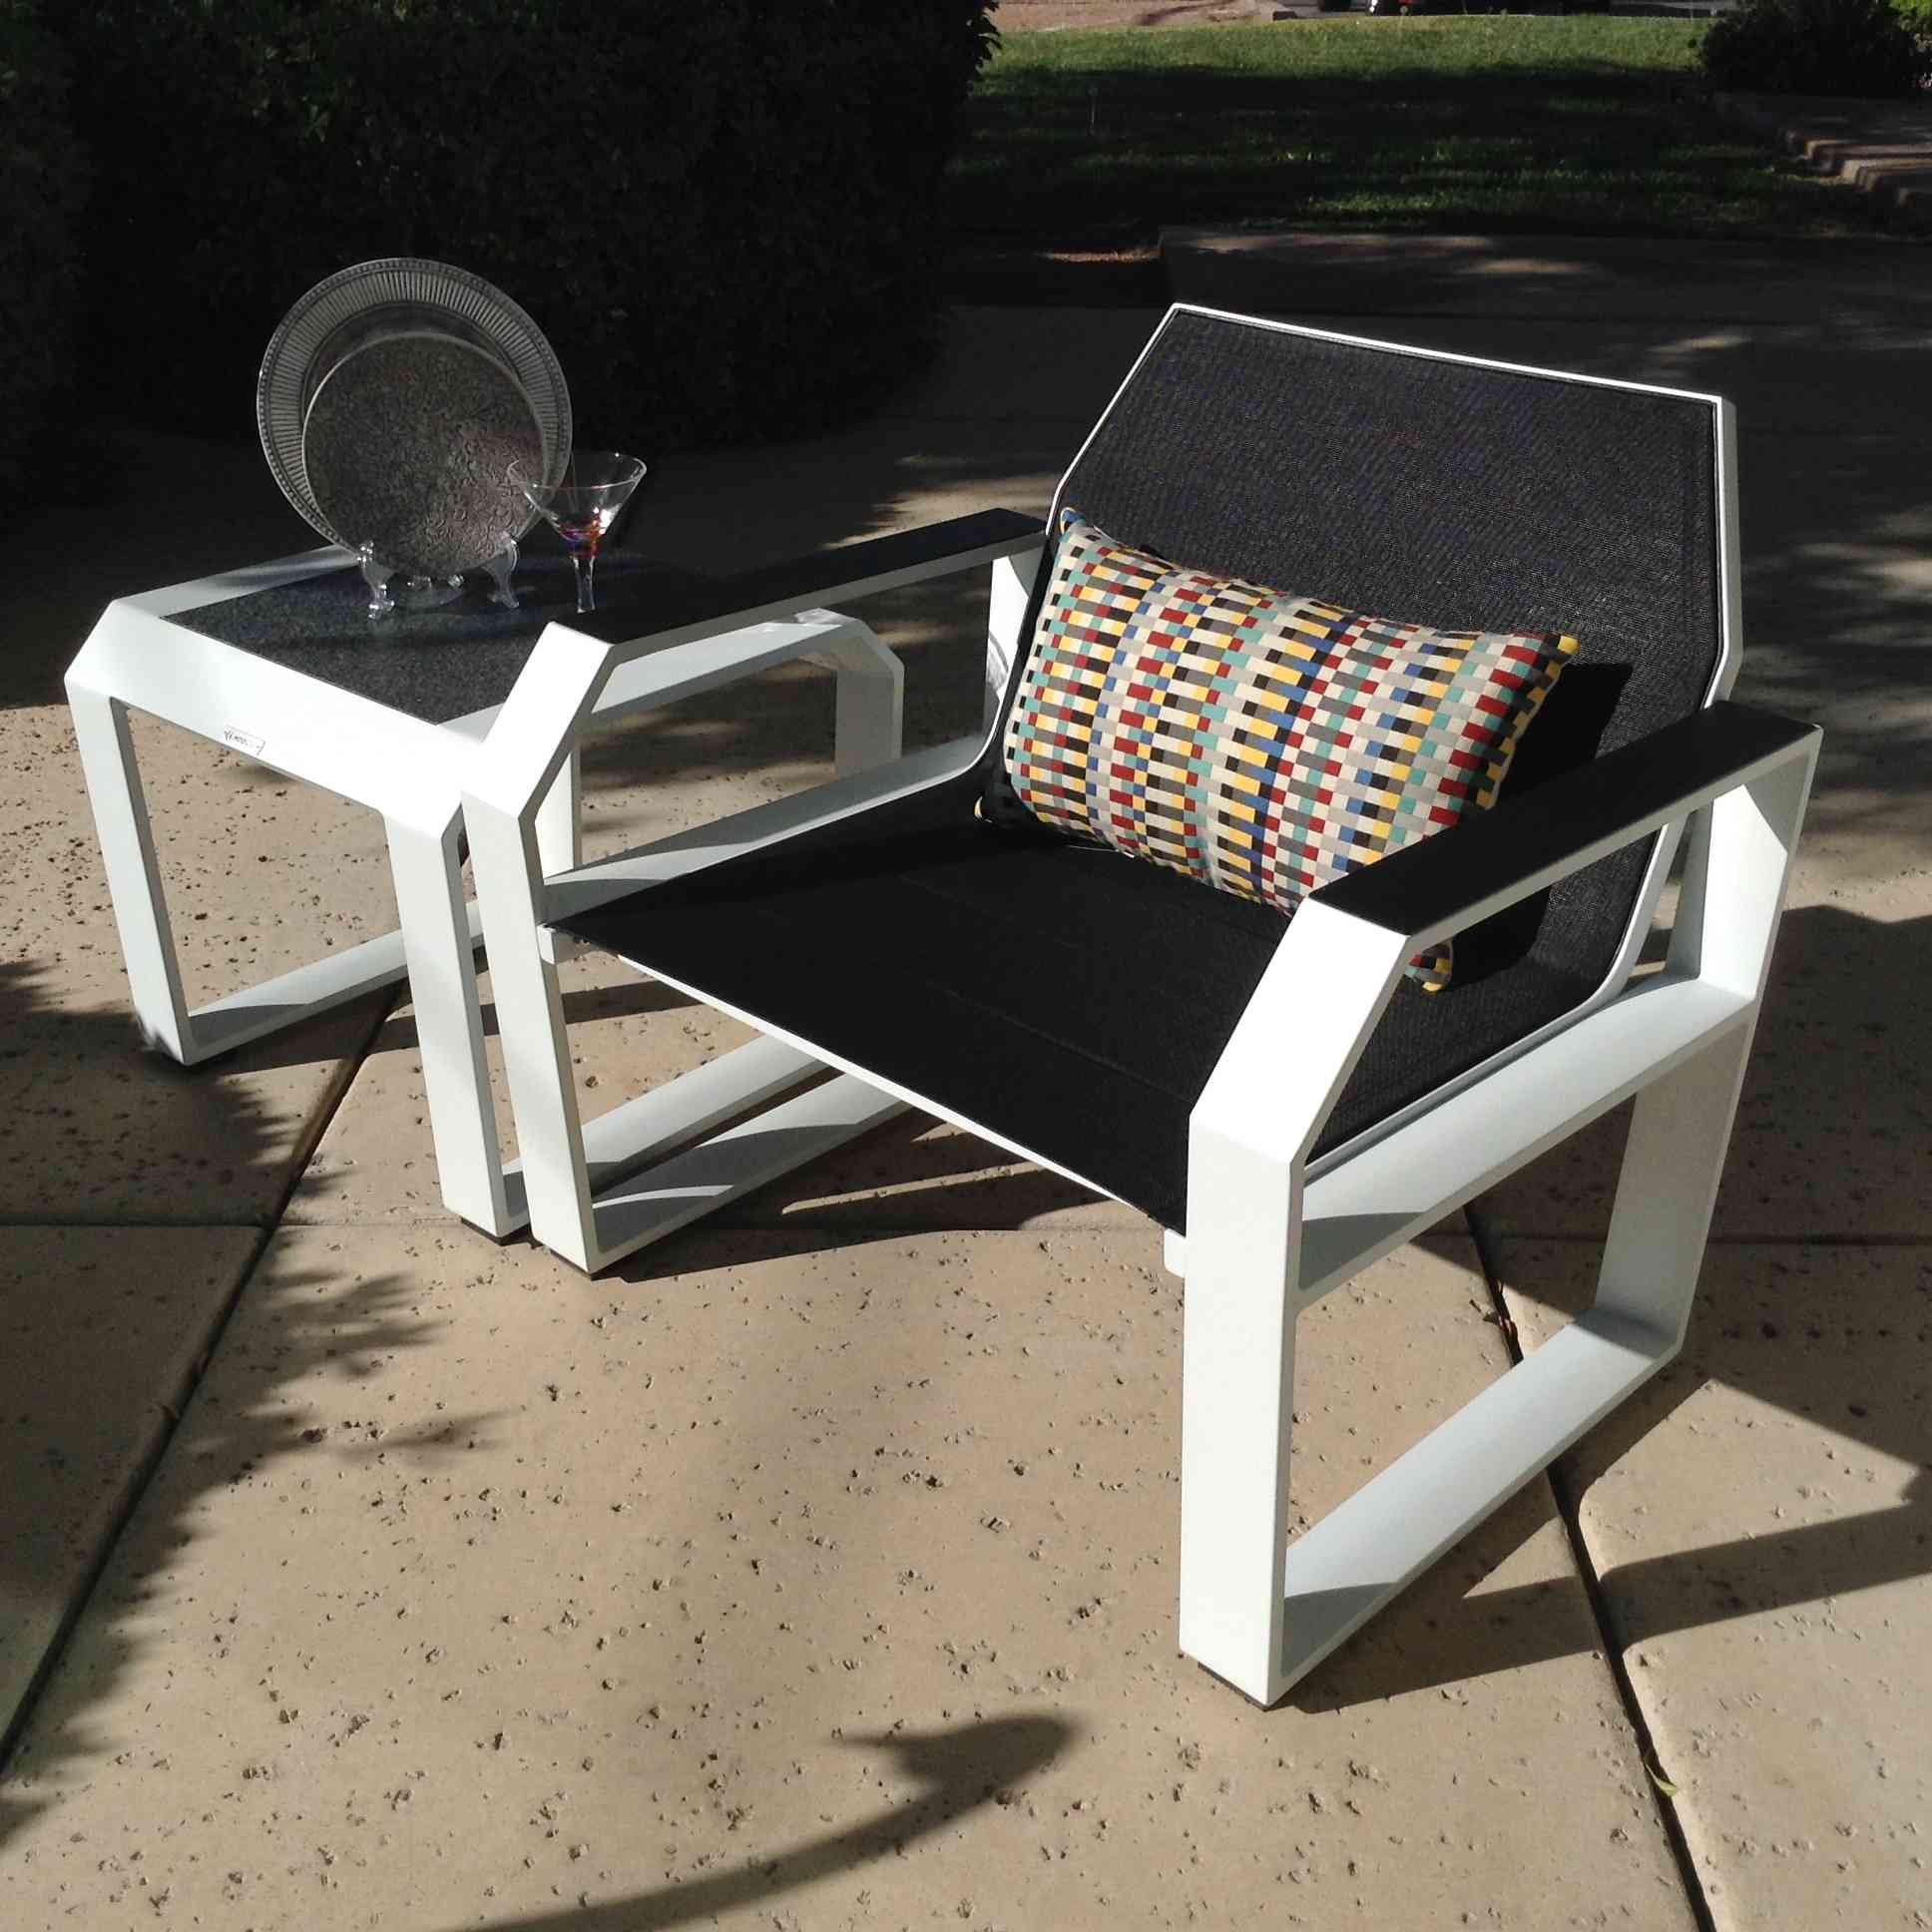 Discount Patio Furniture Las Vegas Nv Cheap Patio Furniture Las